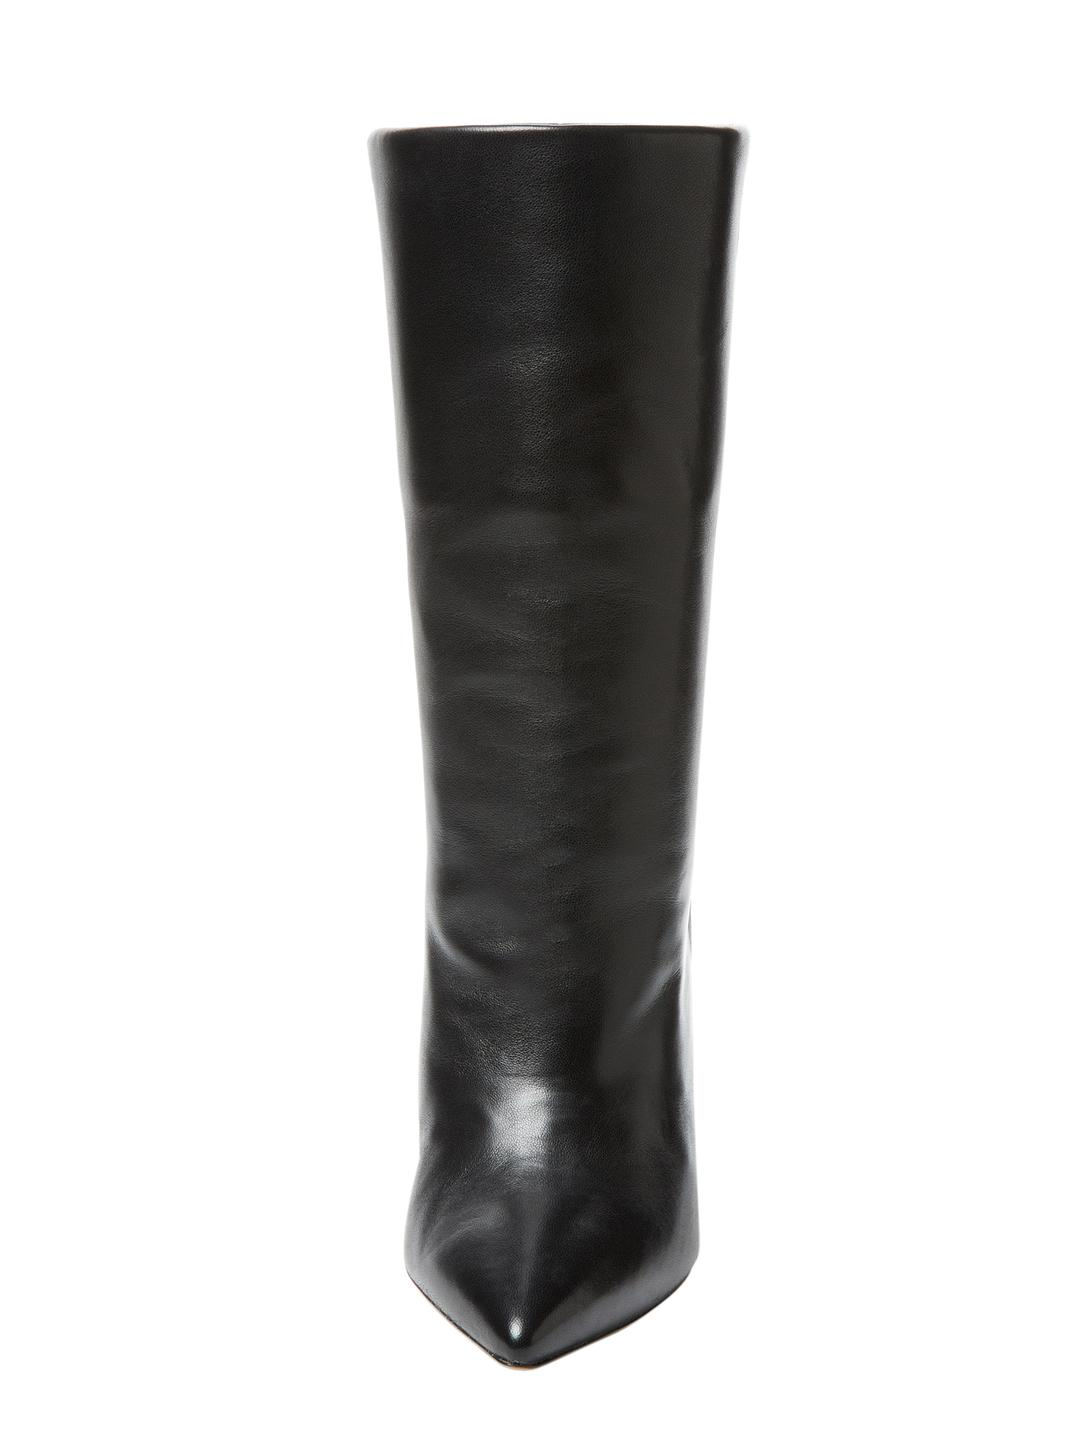 Isabel Marant Solid Leather Boot in Black